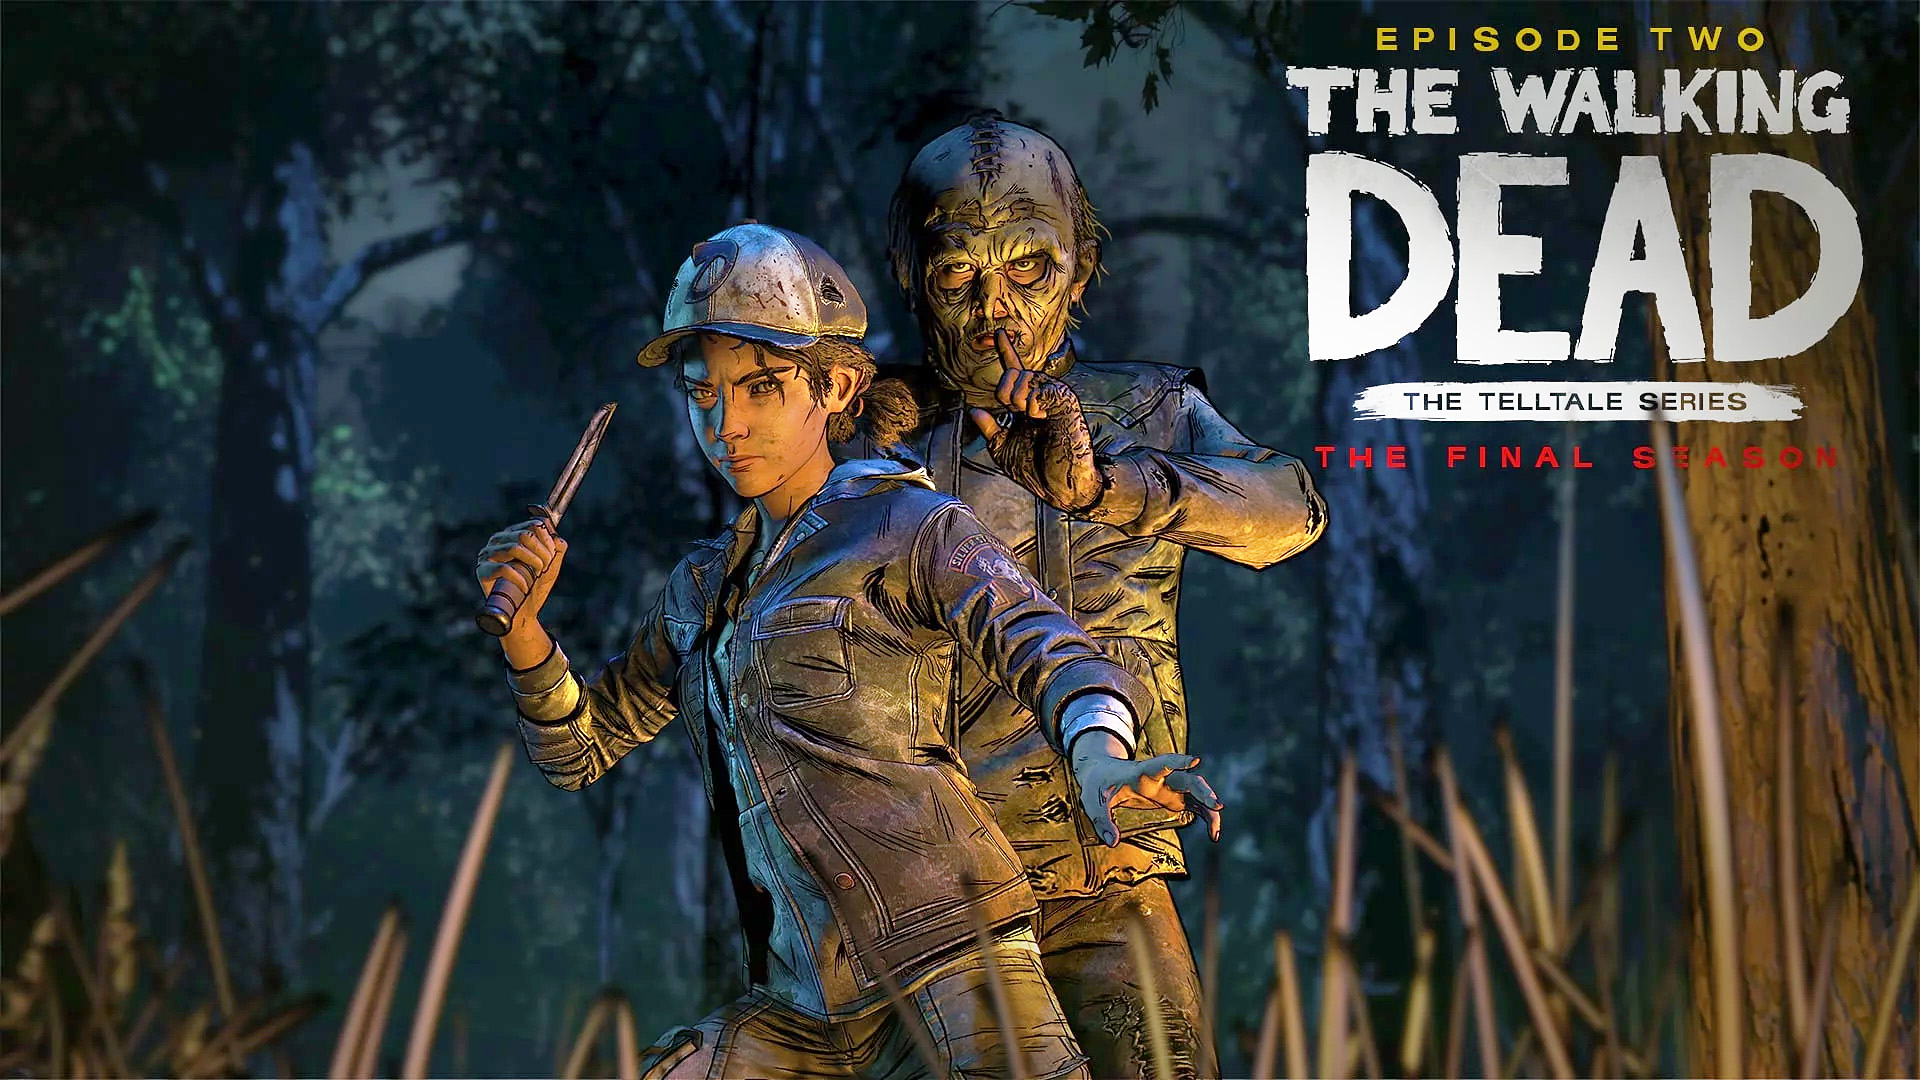 The Walking Dead: The Final Season Episode 2 Review – A